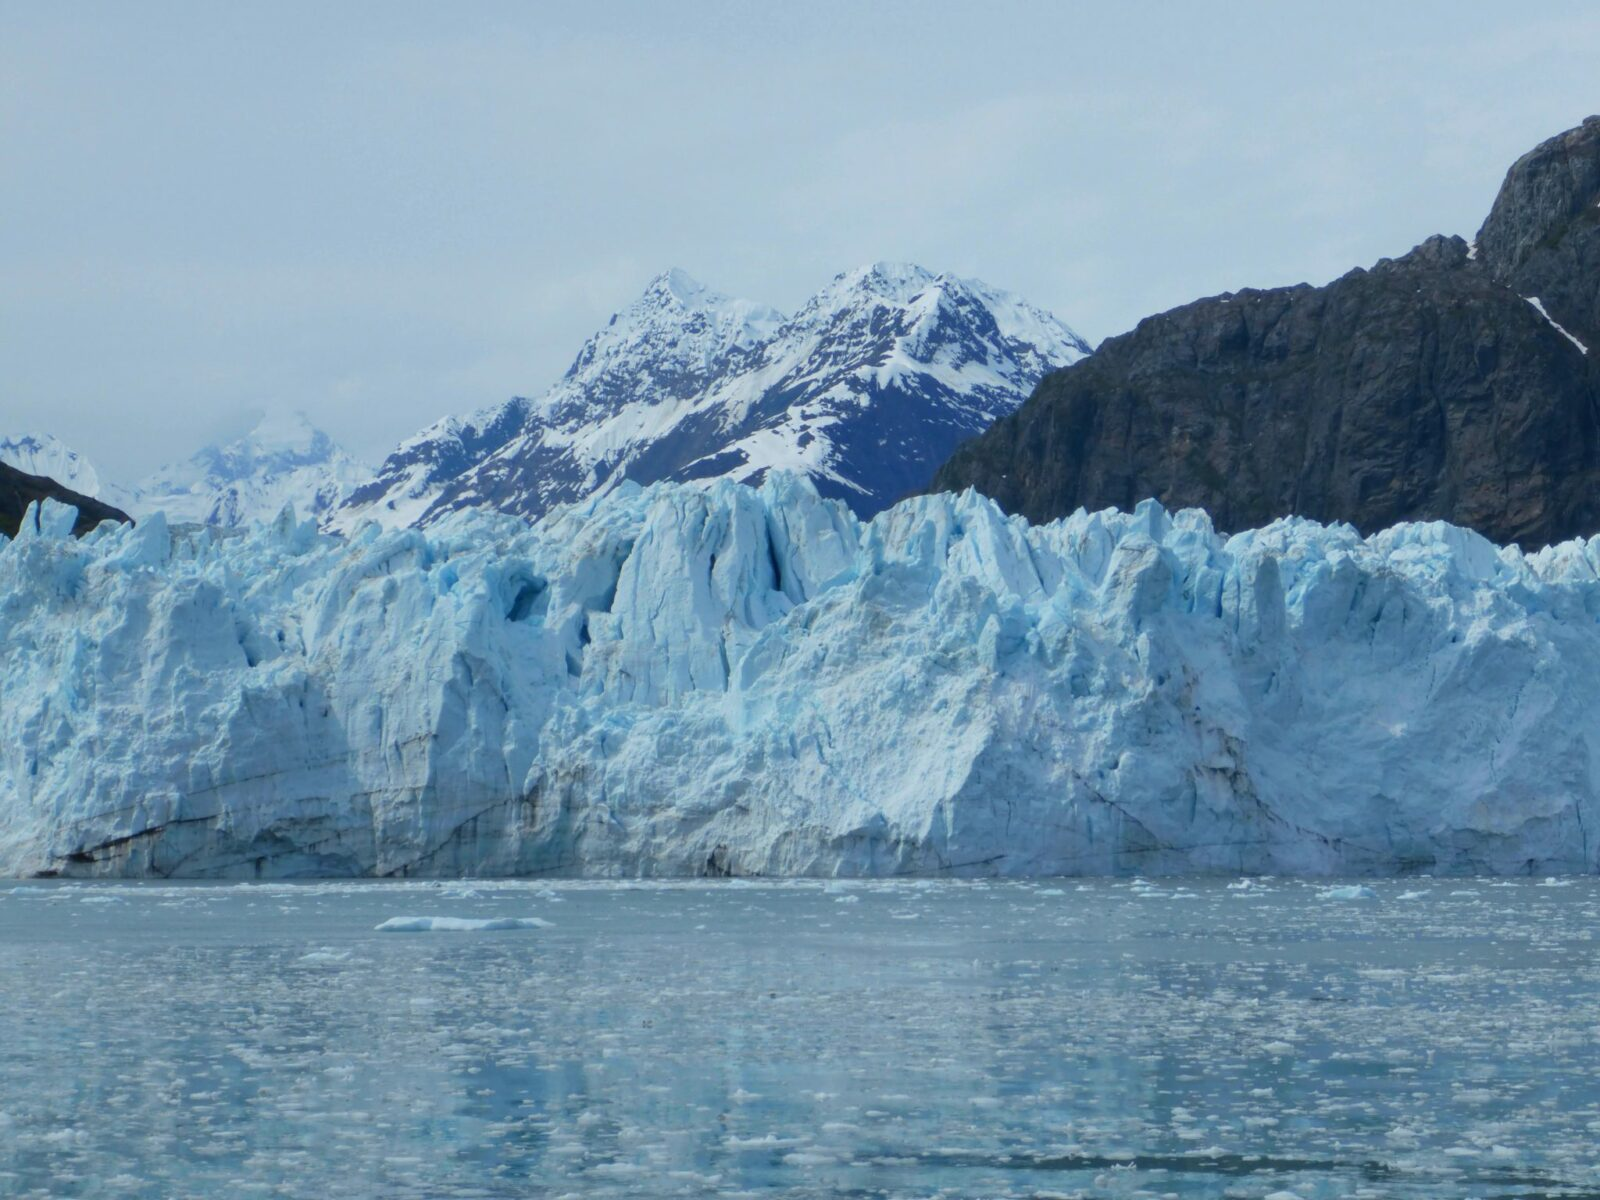 A blue tidewater glacier at the edge of the water. There is lots of ice flating in the water. In the background there are snow covered mountains on a cloudy day